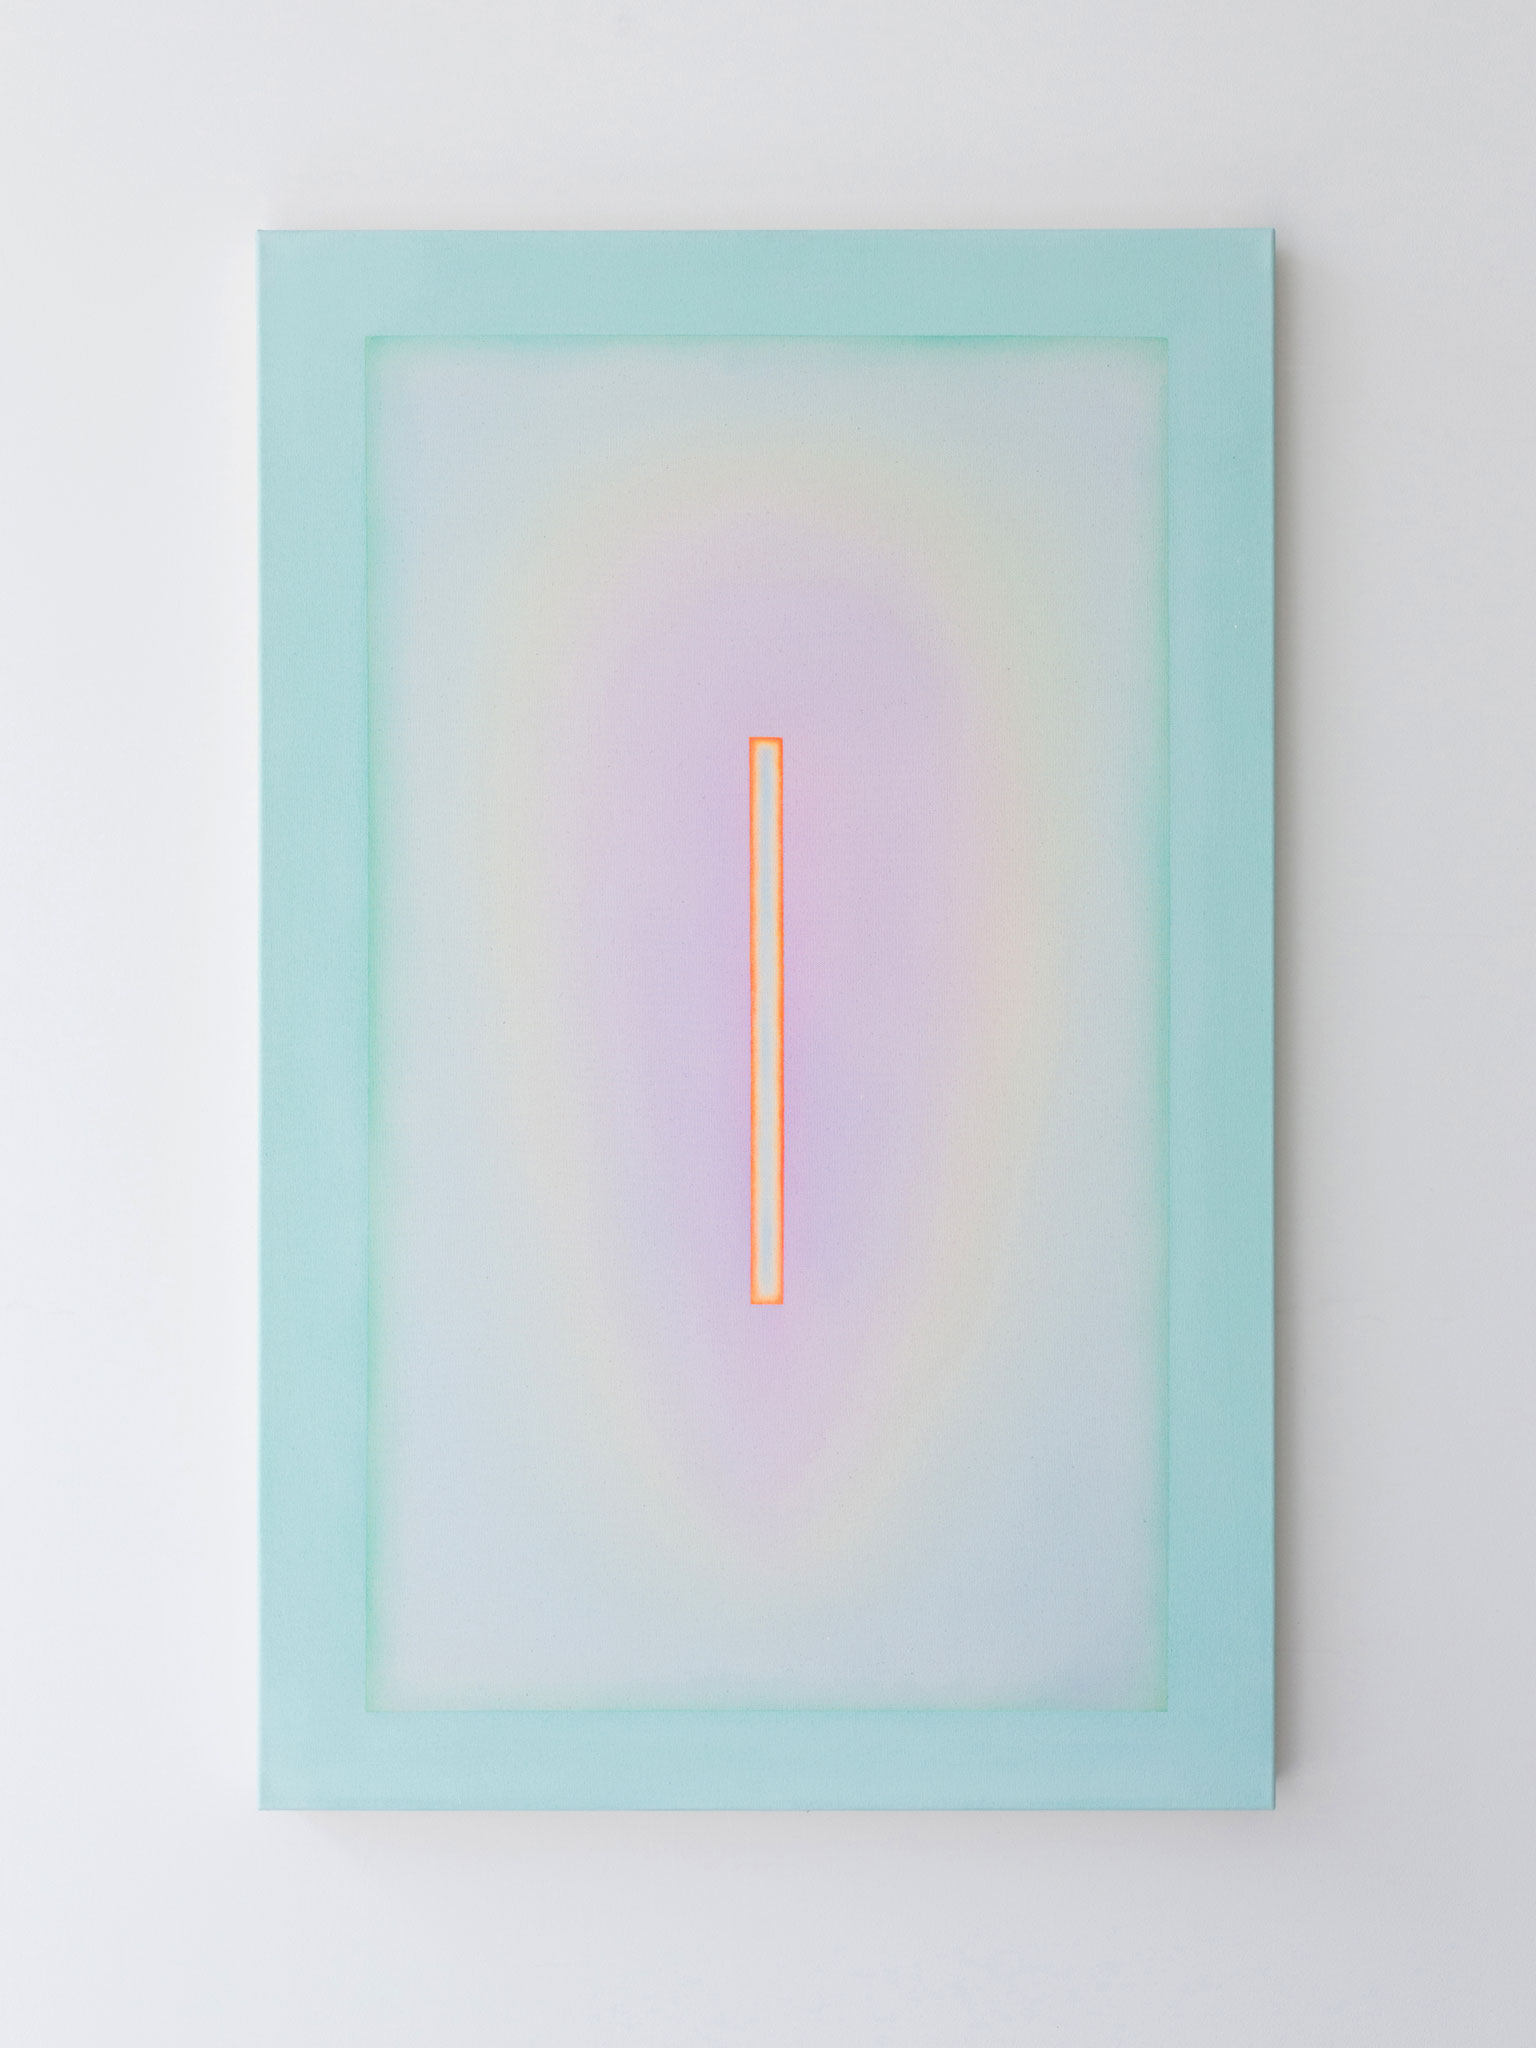 "Alina Birkner ""Untitled (Aquamarine Lavender)"" 2017, 140x90 cm, Acrylic on Canvas"